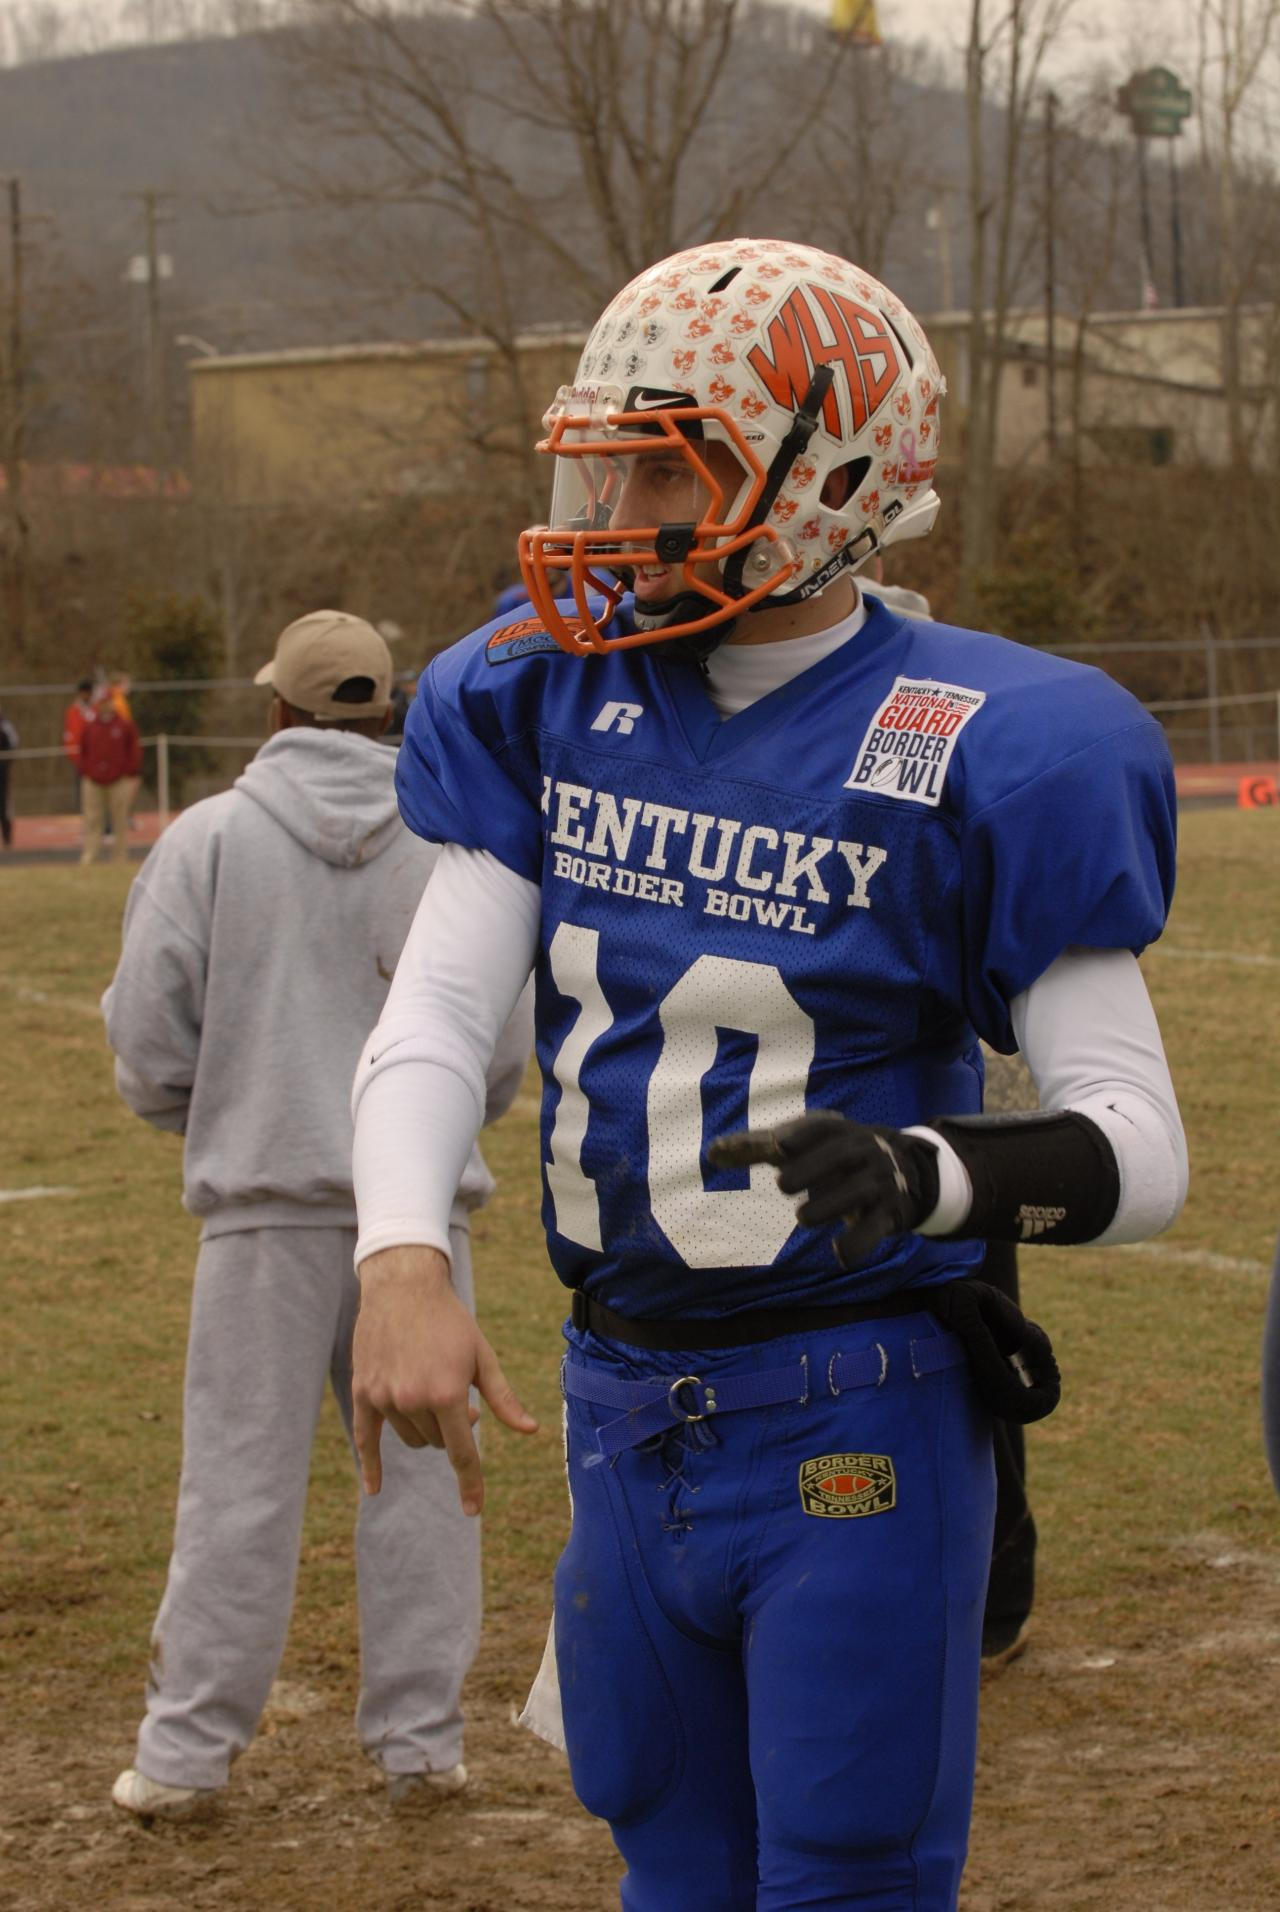 Border Bowl – 2010 Photos, Rosters, & Stats Intended For Warren Co. Tn.west Scool Year